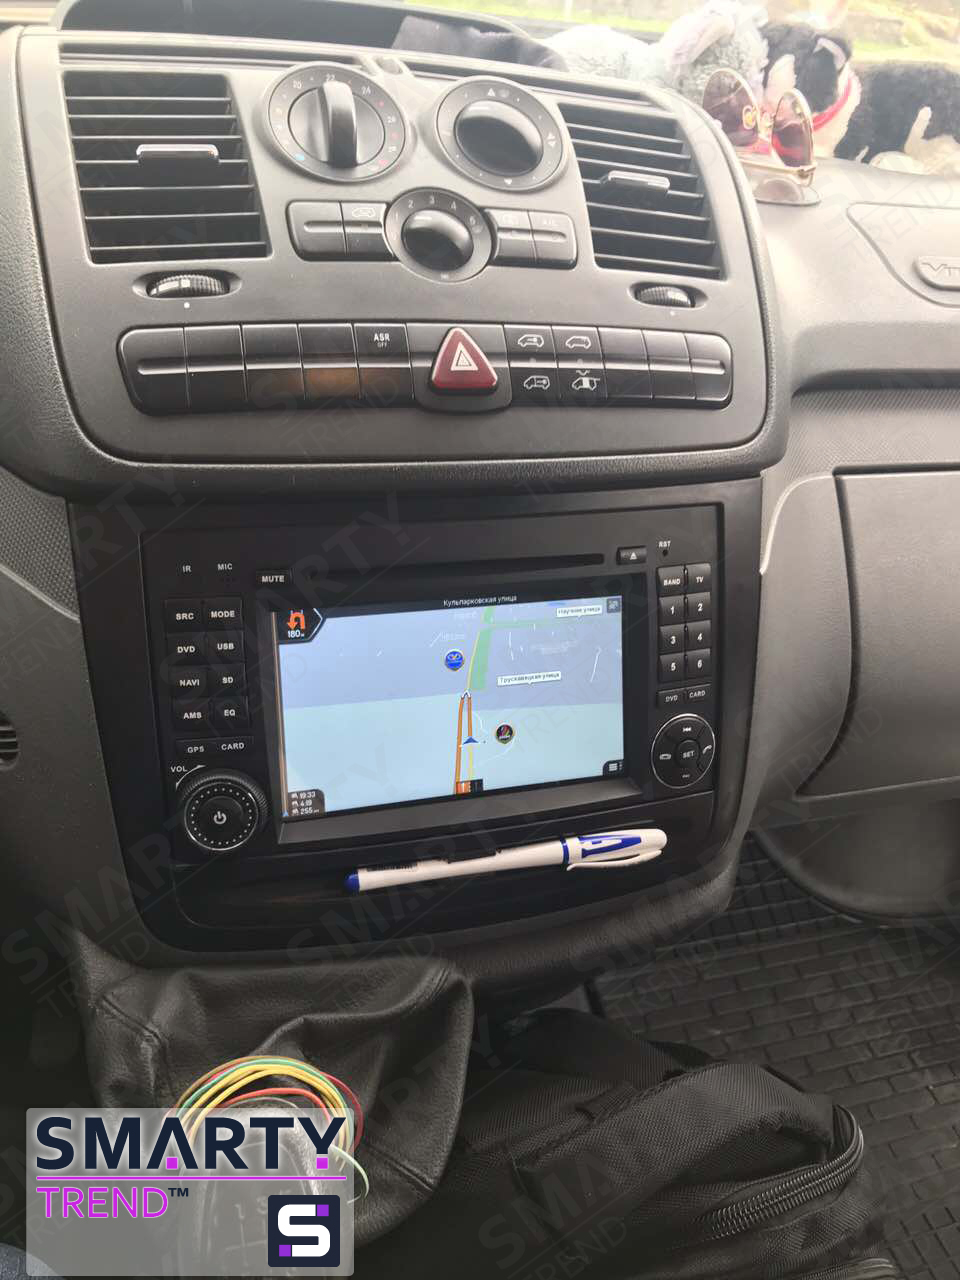 The SMARTY Trend head unit for Mercedes-Benz Vito